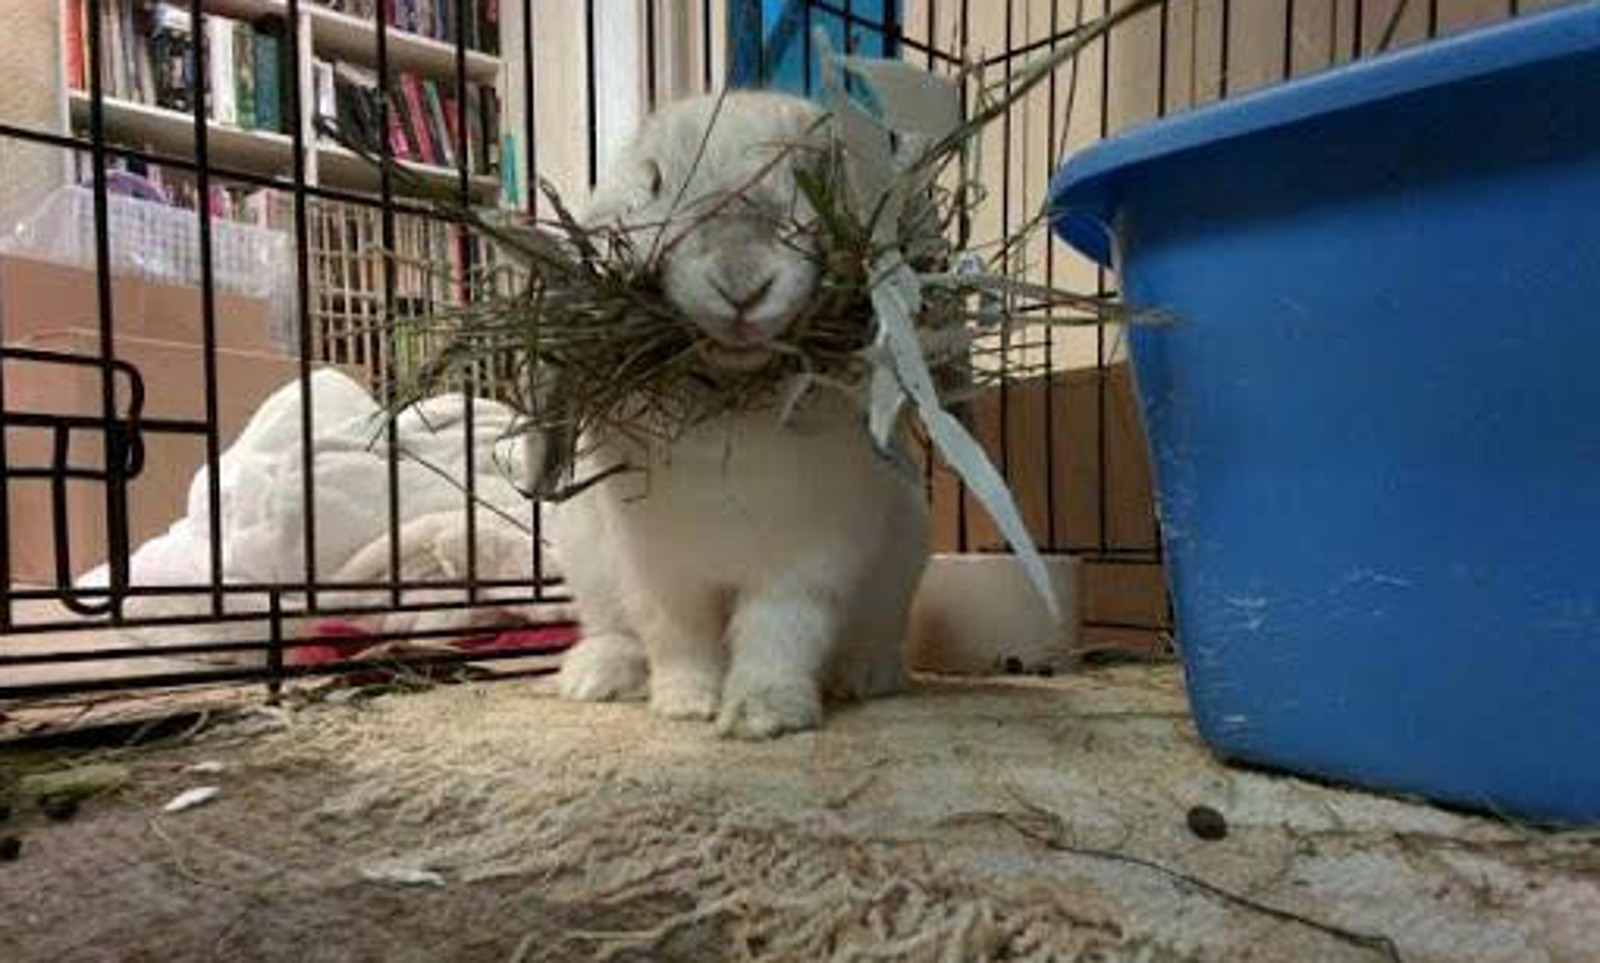 Baby Rabbit Rescued After Being Terrorized for Weeks by Pen Mate in a Filthy Cage